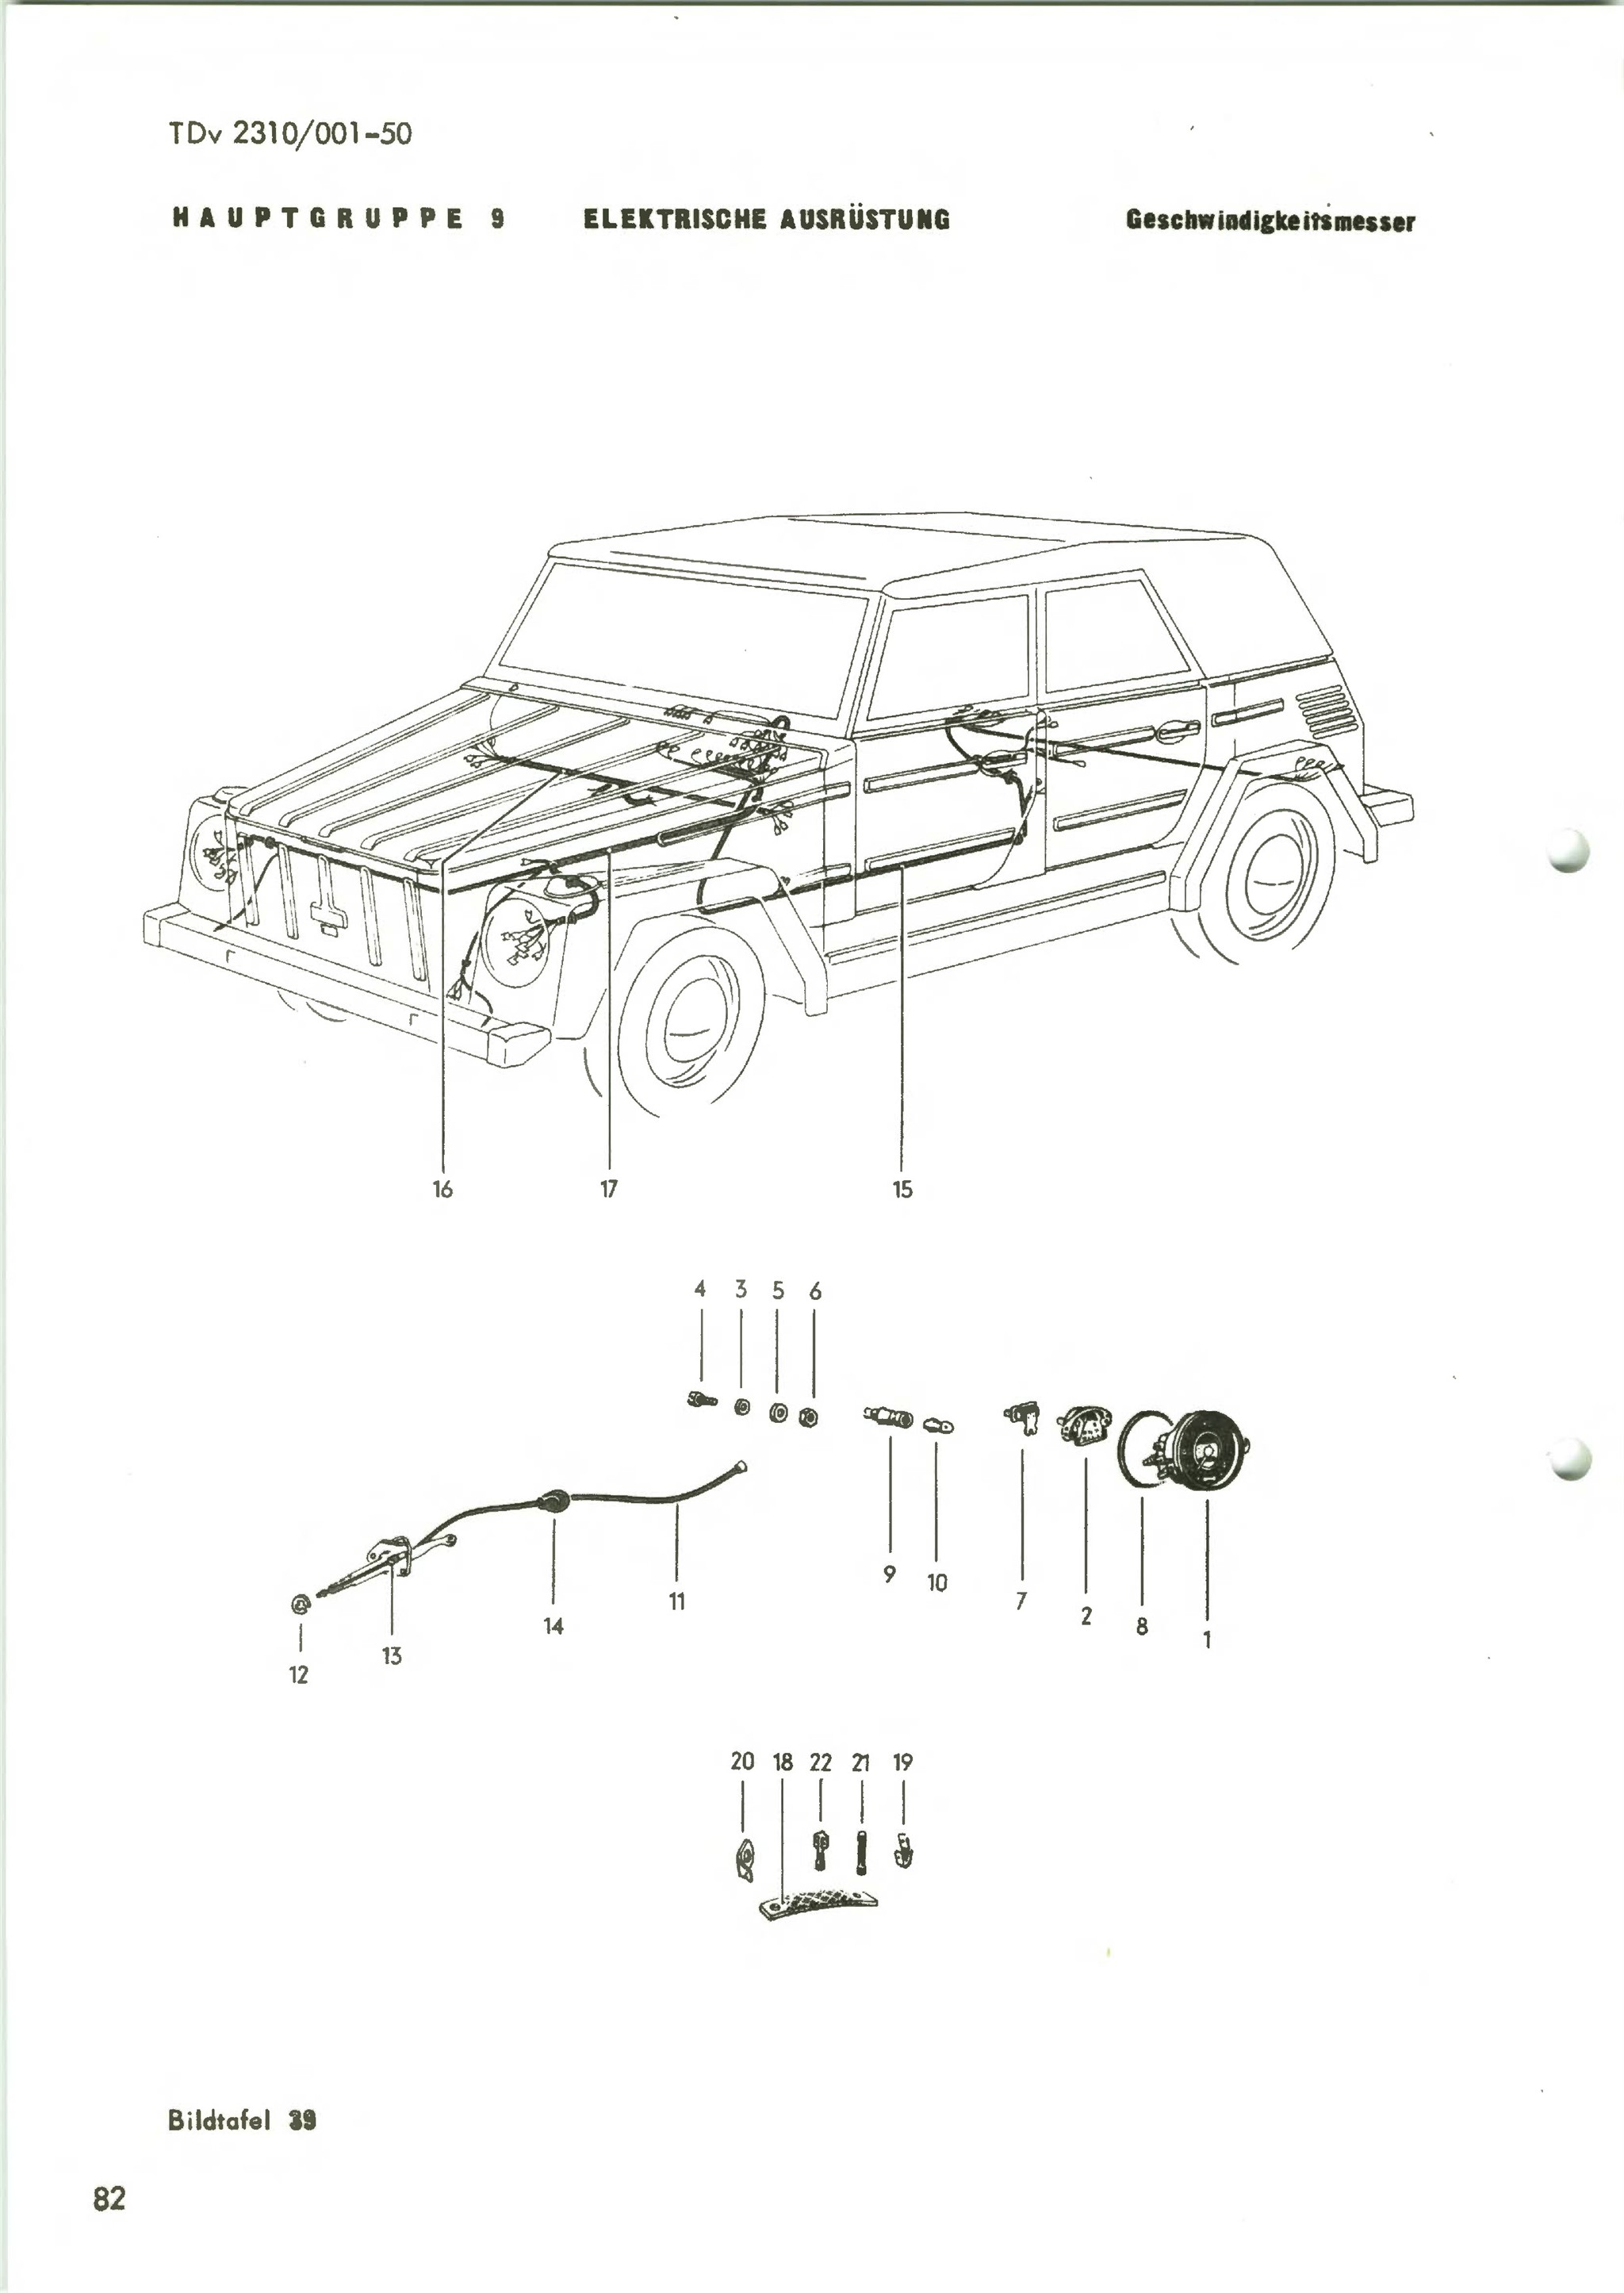 1991 Vw Cabriolet Wiring Diagram And Fuse Box 19771978 Mini Special Of 1977 1978 89 Cadillac Deville Engine On Parts For 1992